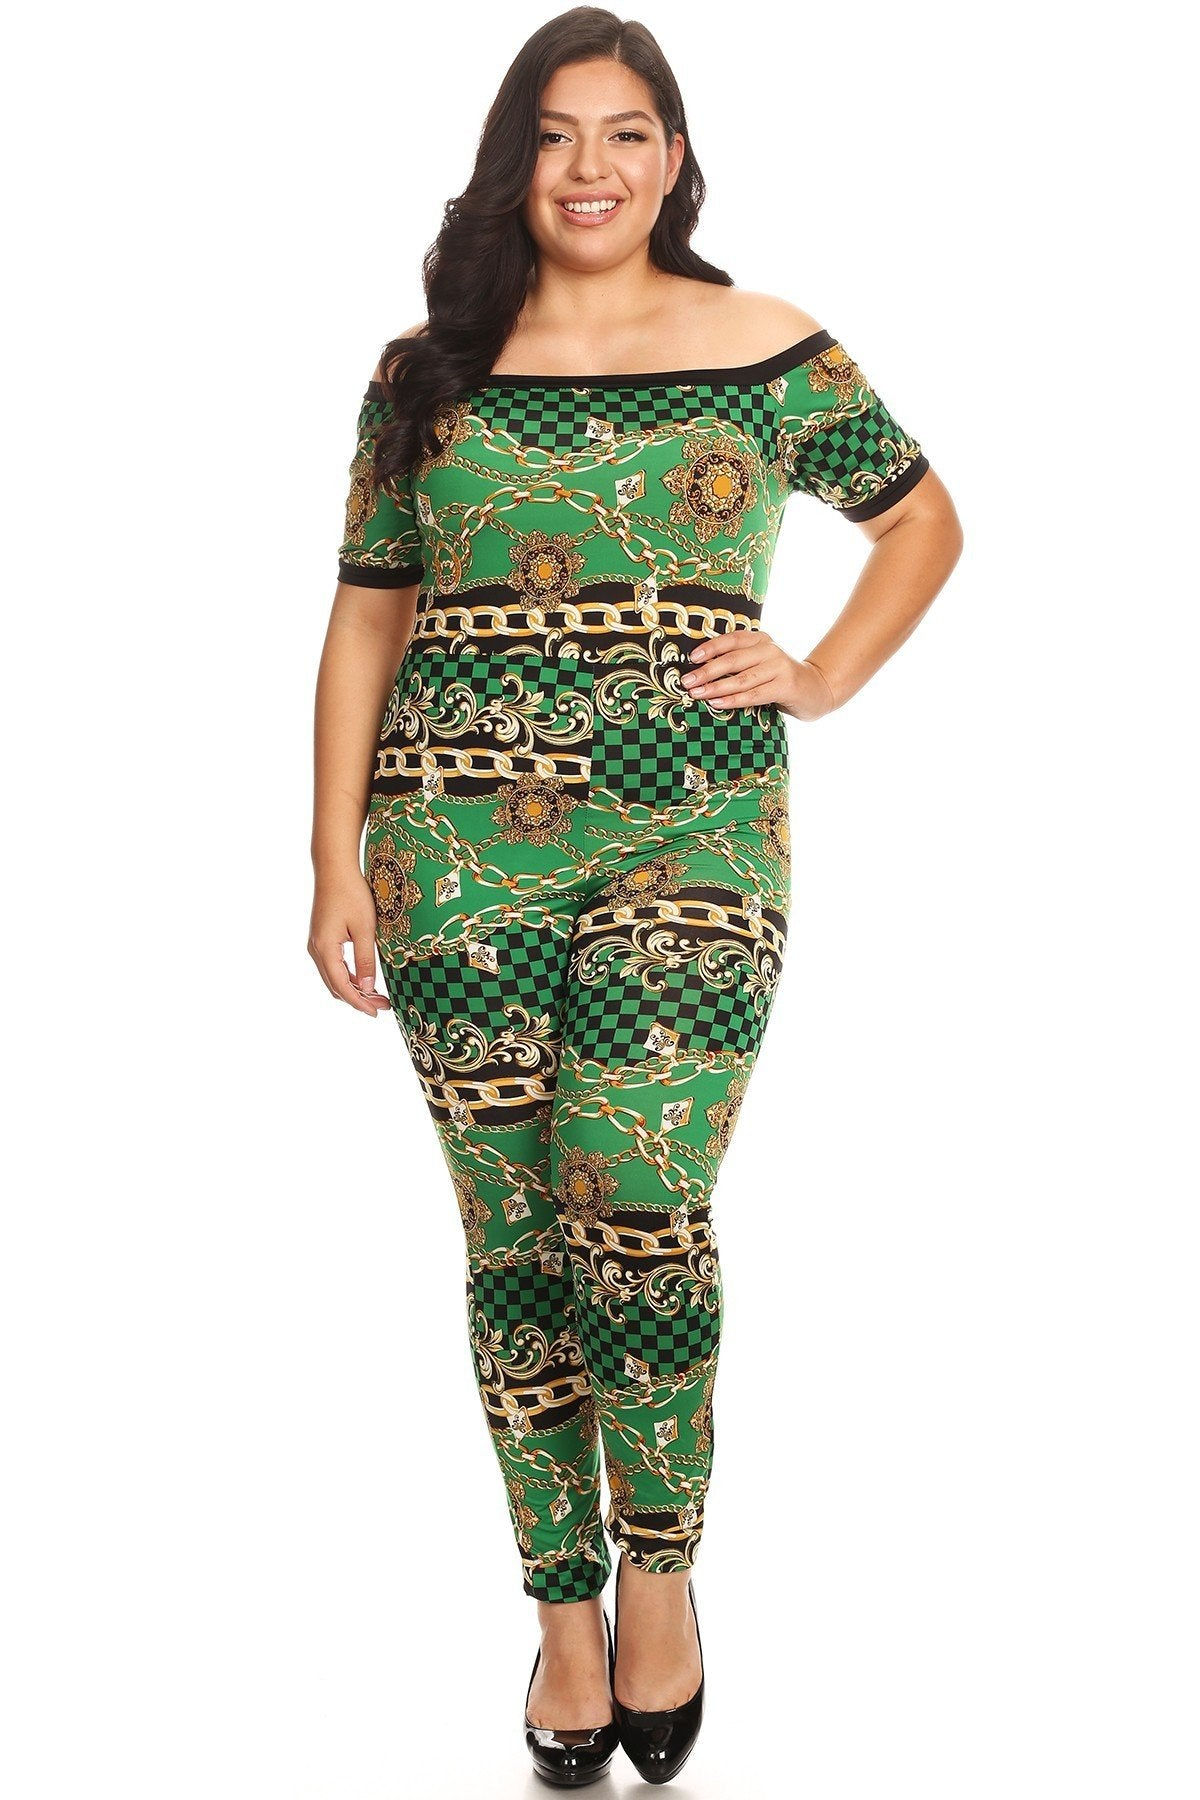 a7b7f2c6741 Plus Size Chains Printed Bodycon Fit Checkered Jumpsuit – slayboo